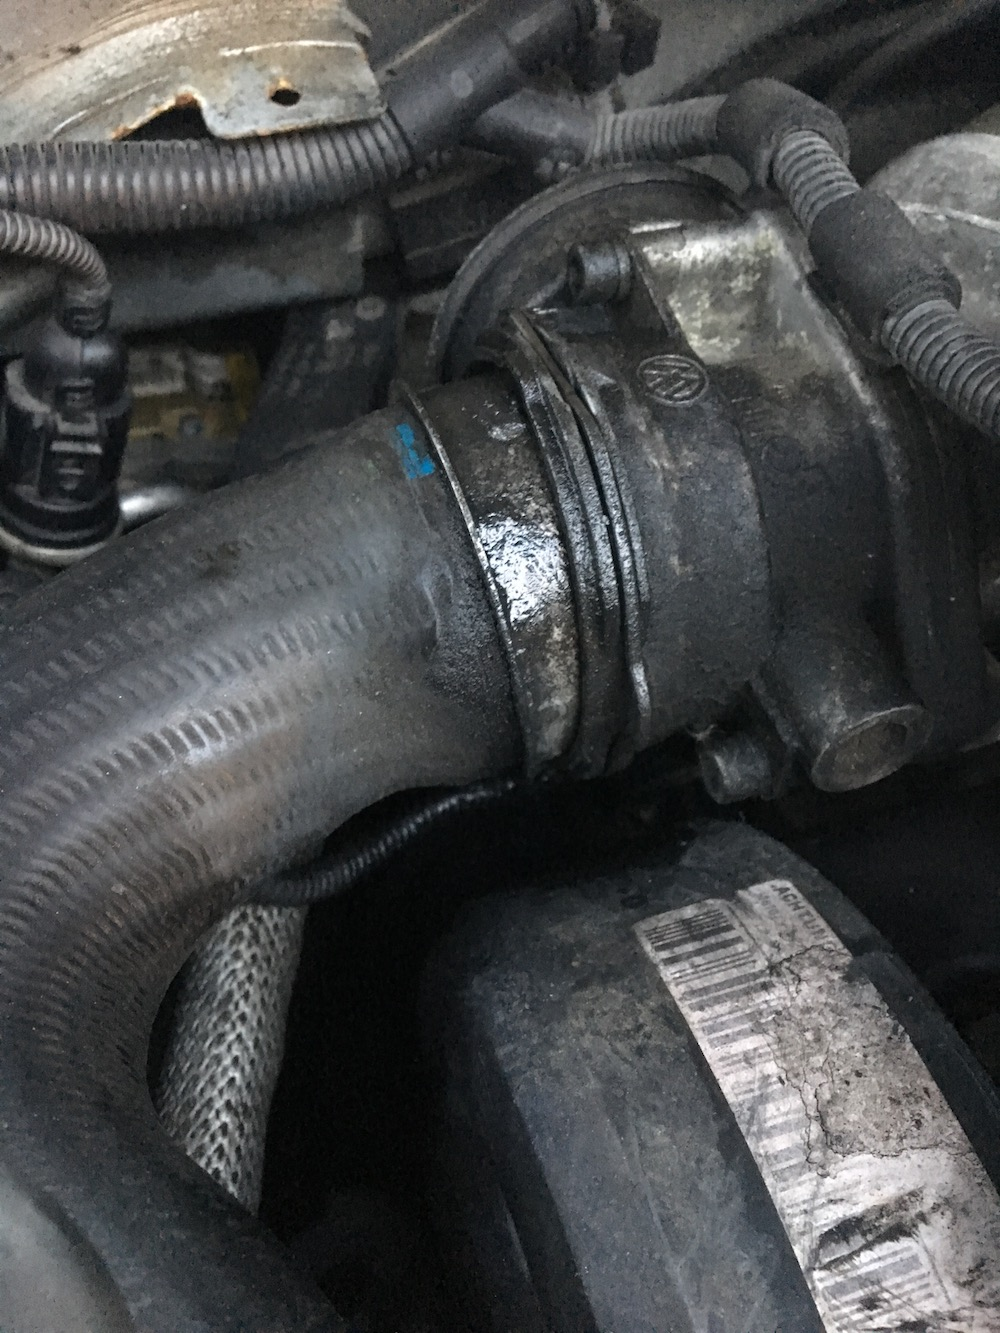 Maf G70 P0101 000 Implausible Signal Tdiclub Forums Bmw Z3 Fuel Filter Location Http Mahonkincom Milktree Tdi Crooked Pipe